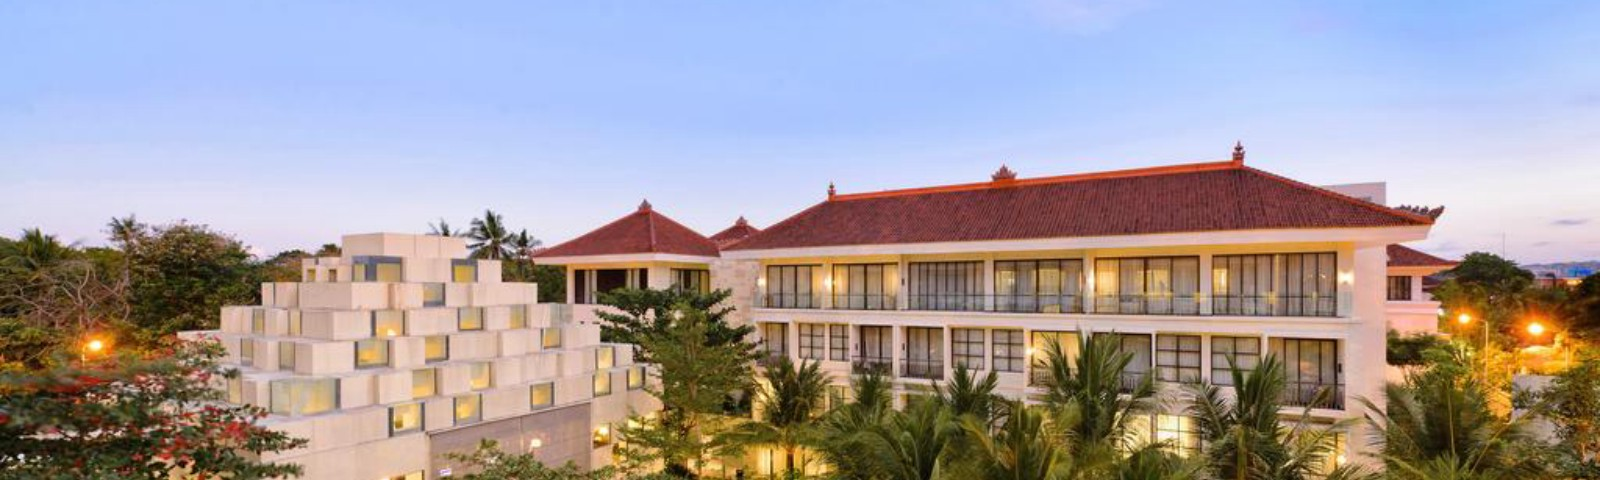 Property Of The Day 5 Bali Nusa Dua Hotel And Convention